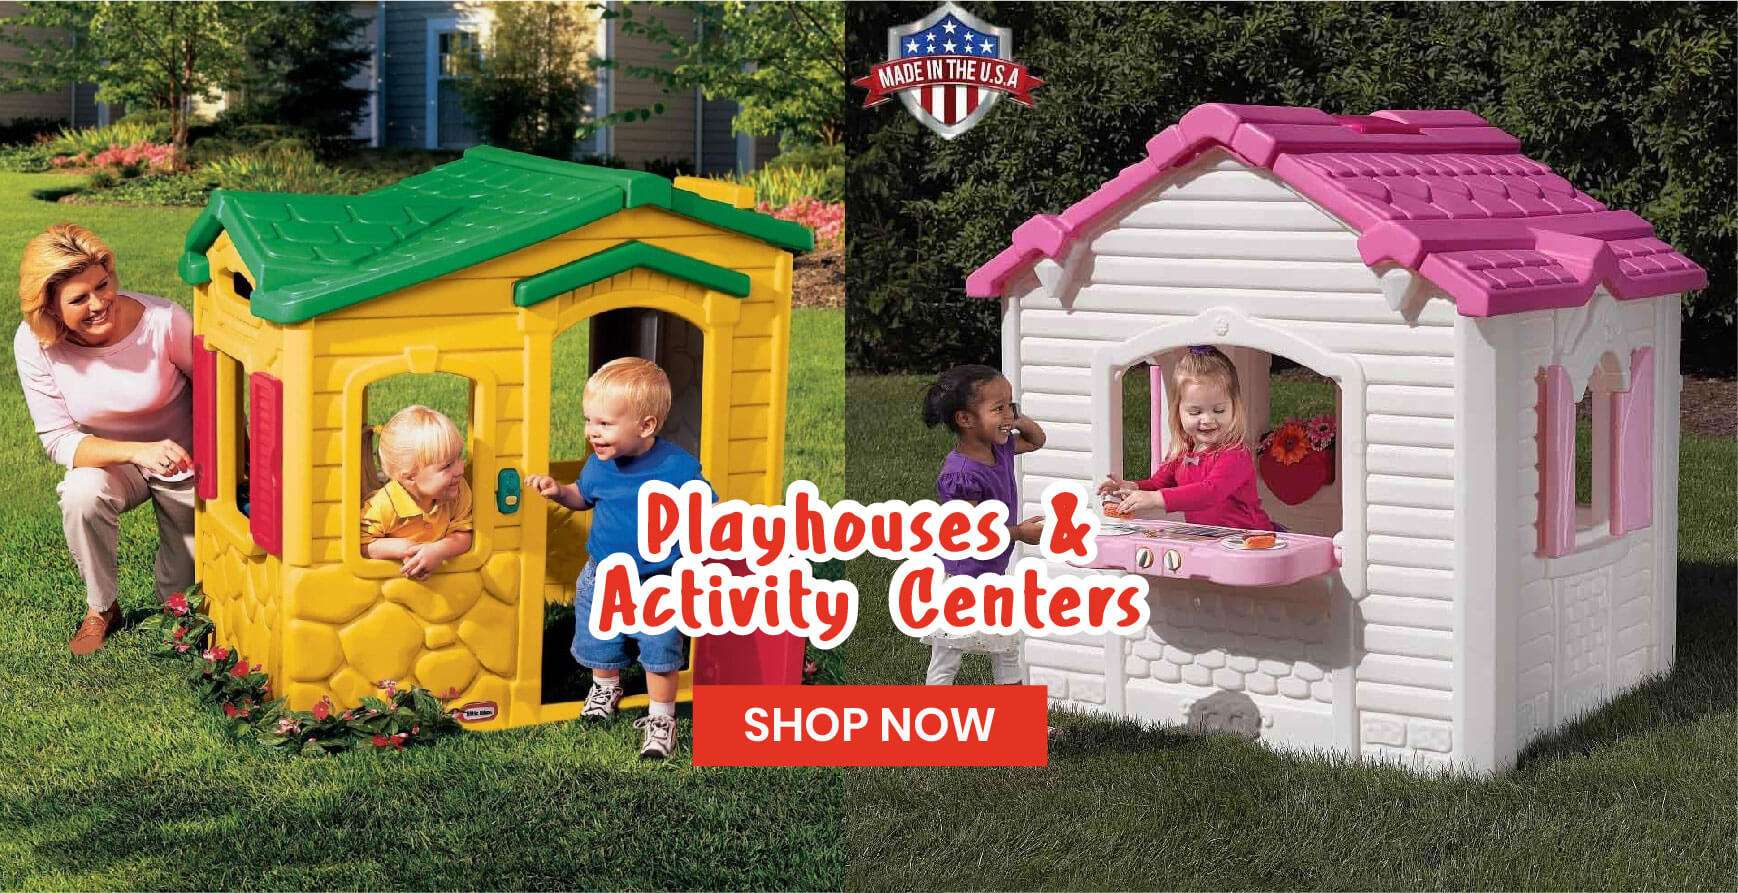 playhouses-activity-centers-for-kids